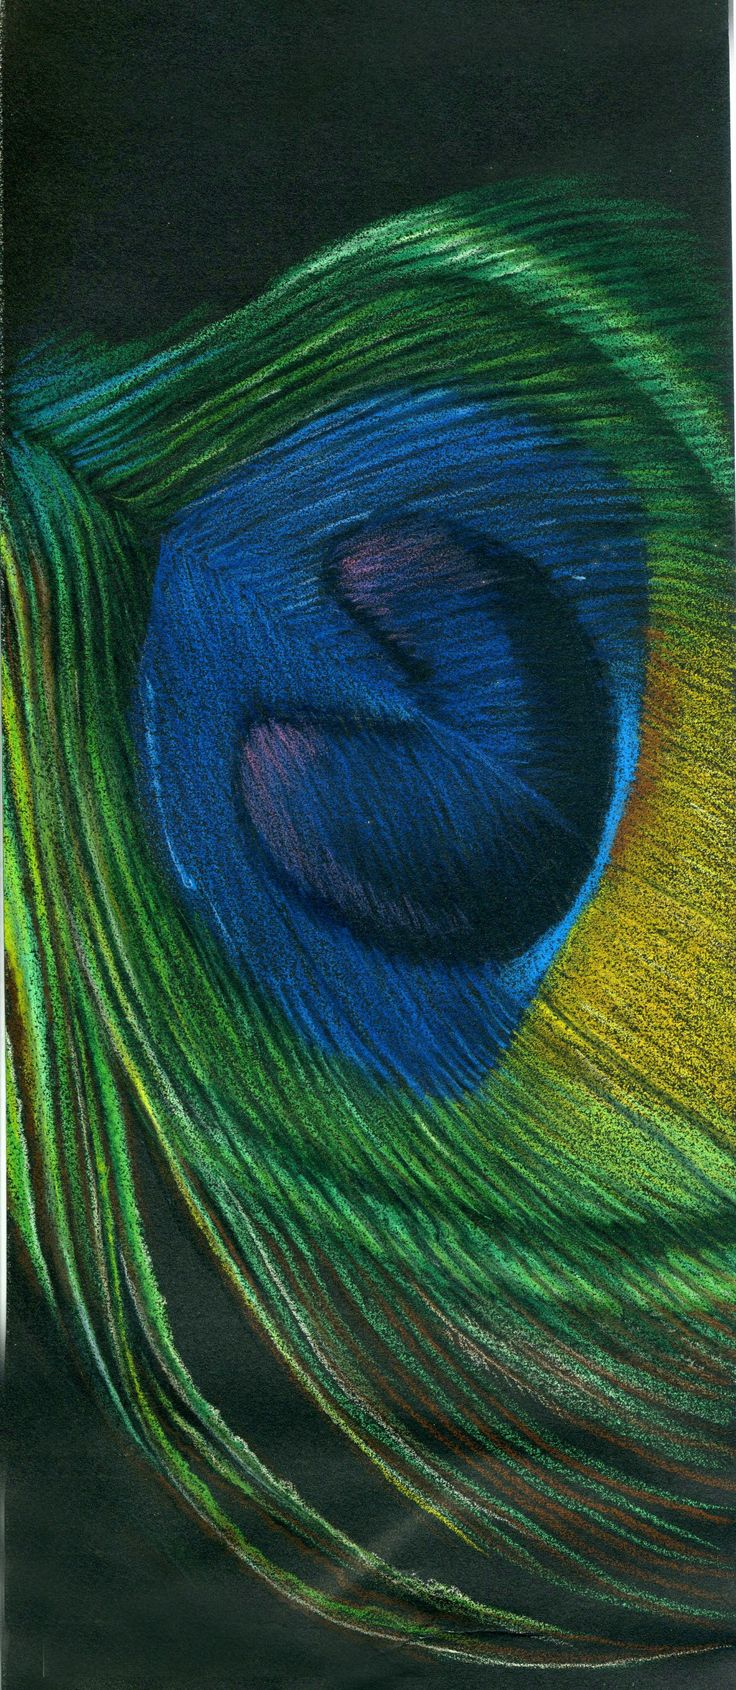 Color art colored pencils -  Peacock Feather Colored Pencil On Black Paper By Kristee Mays Color Pencil Artcolour